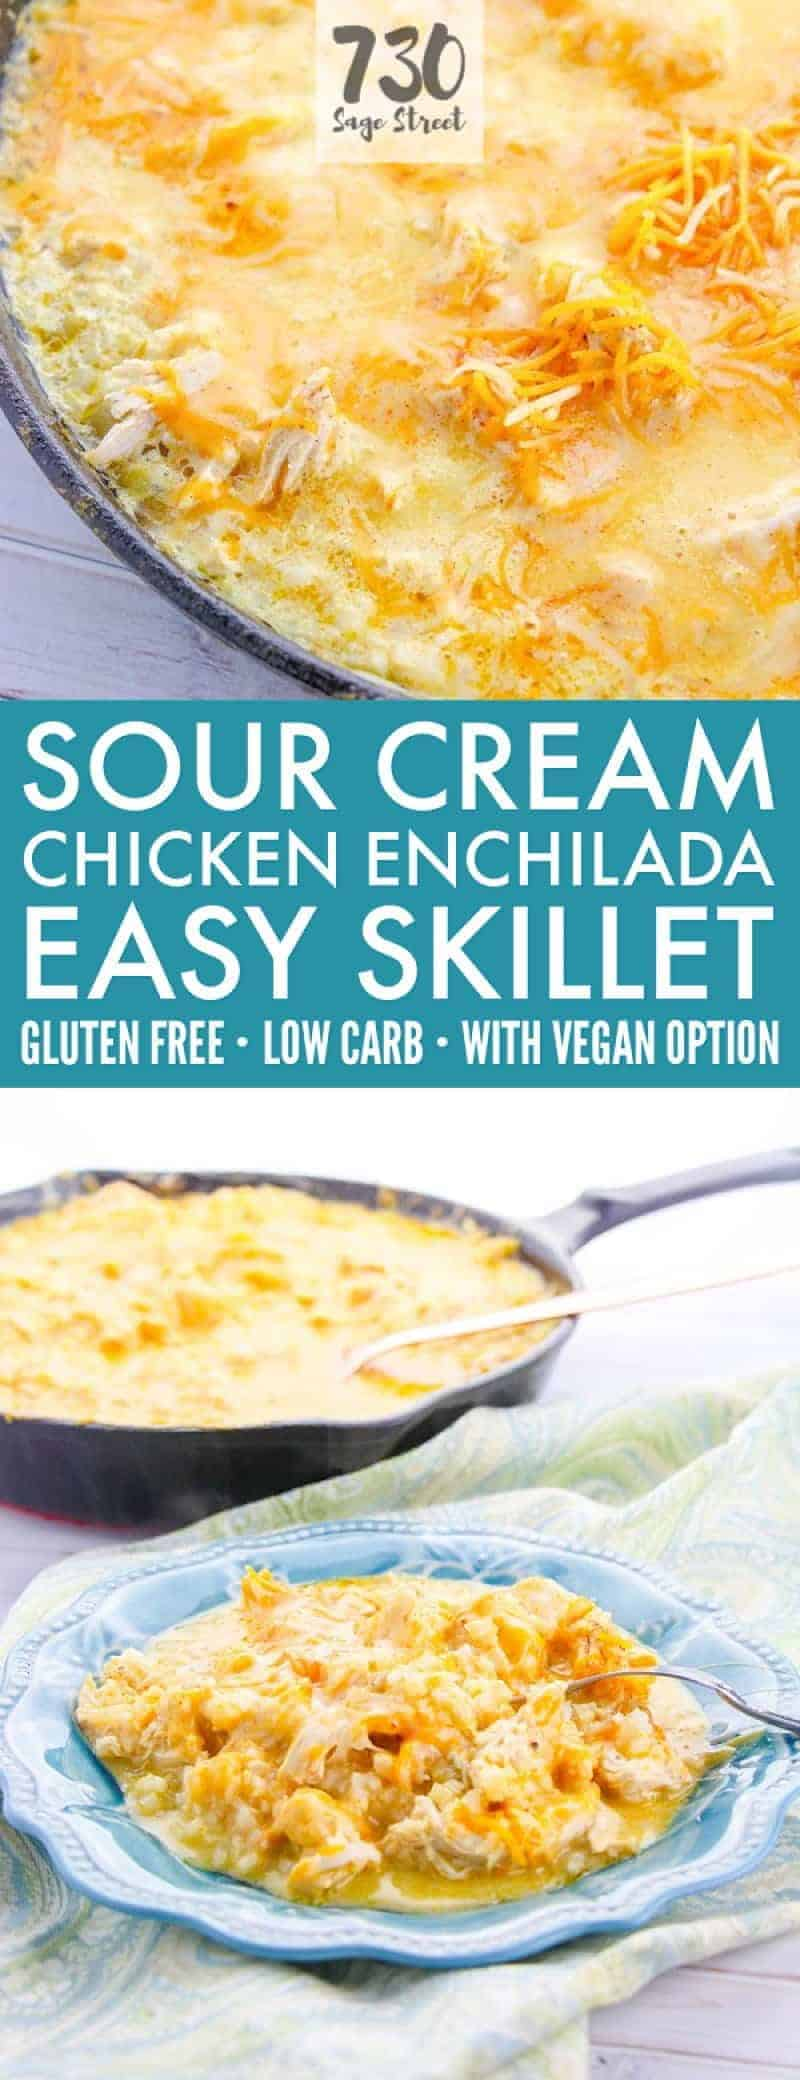 sour cream chicken enchiladas photo collage with text